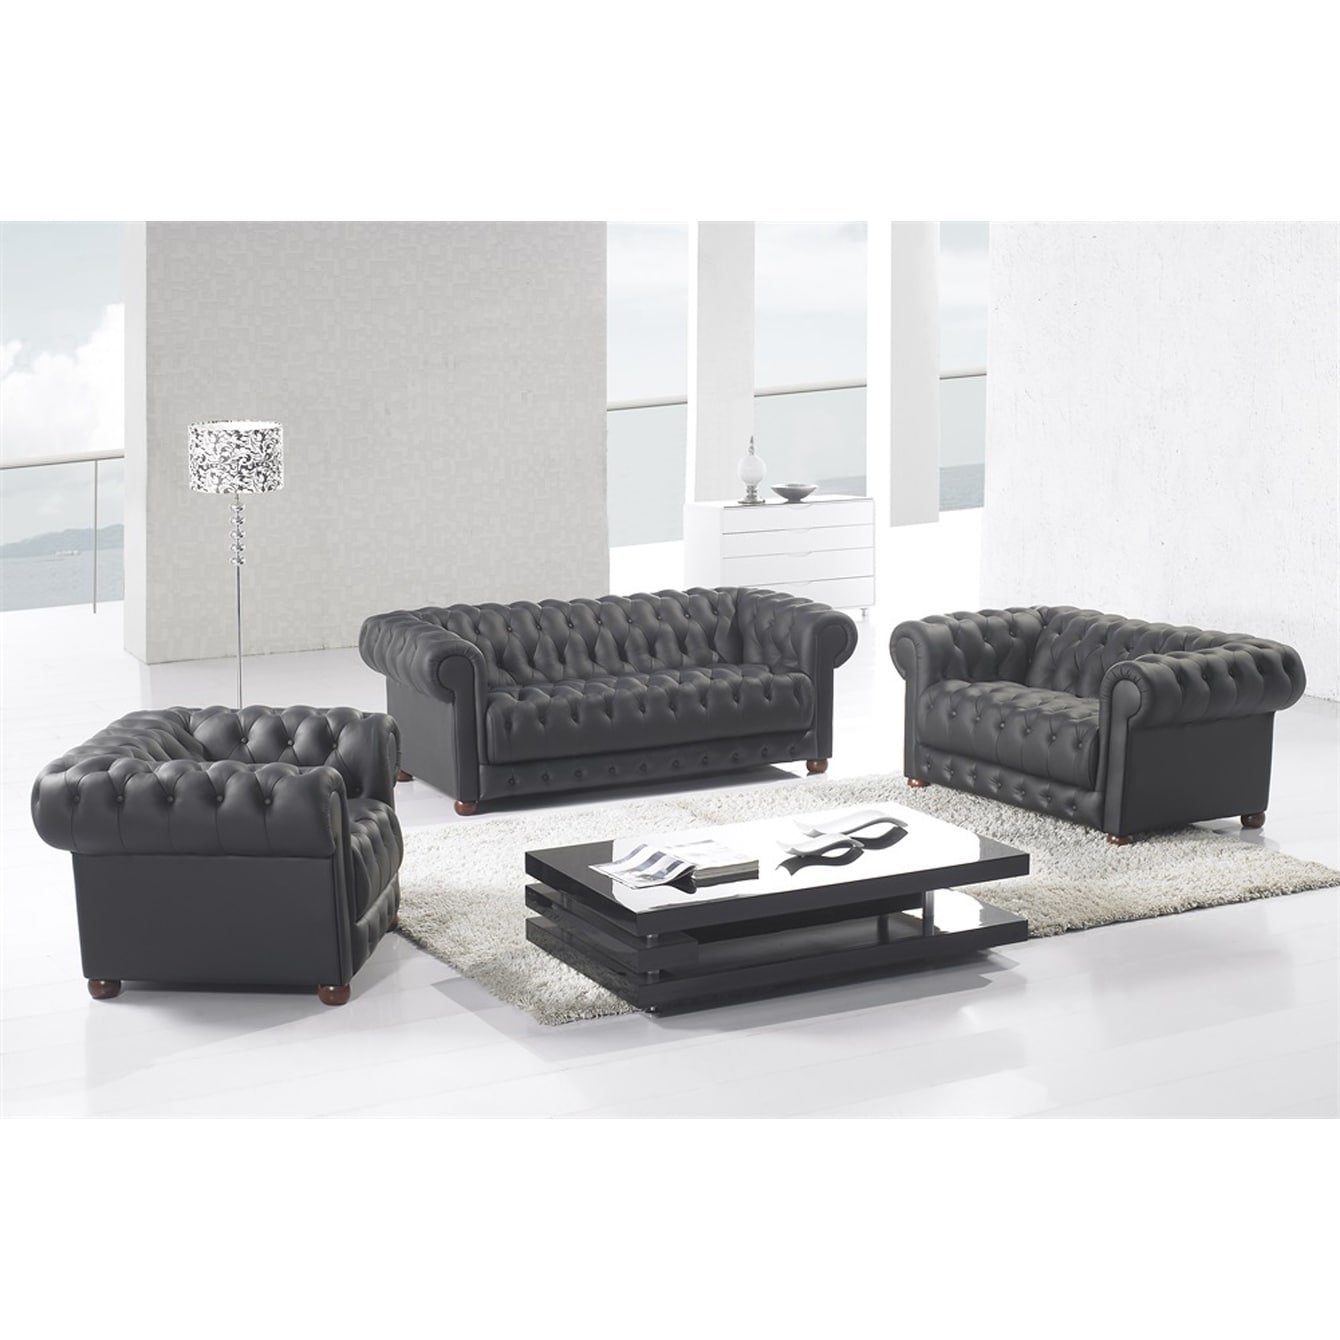 Shop Matte Black Modern Contemporary Real Leather Configurable Living Room Furniture Set With Sofa Loveseat And Chair On Sale Overstock 24239956 Brown